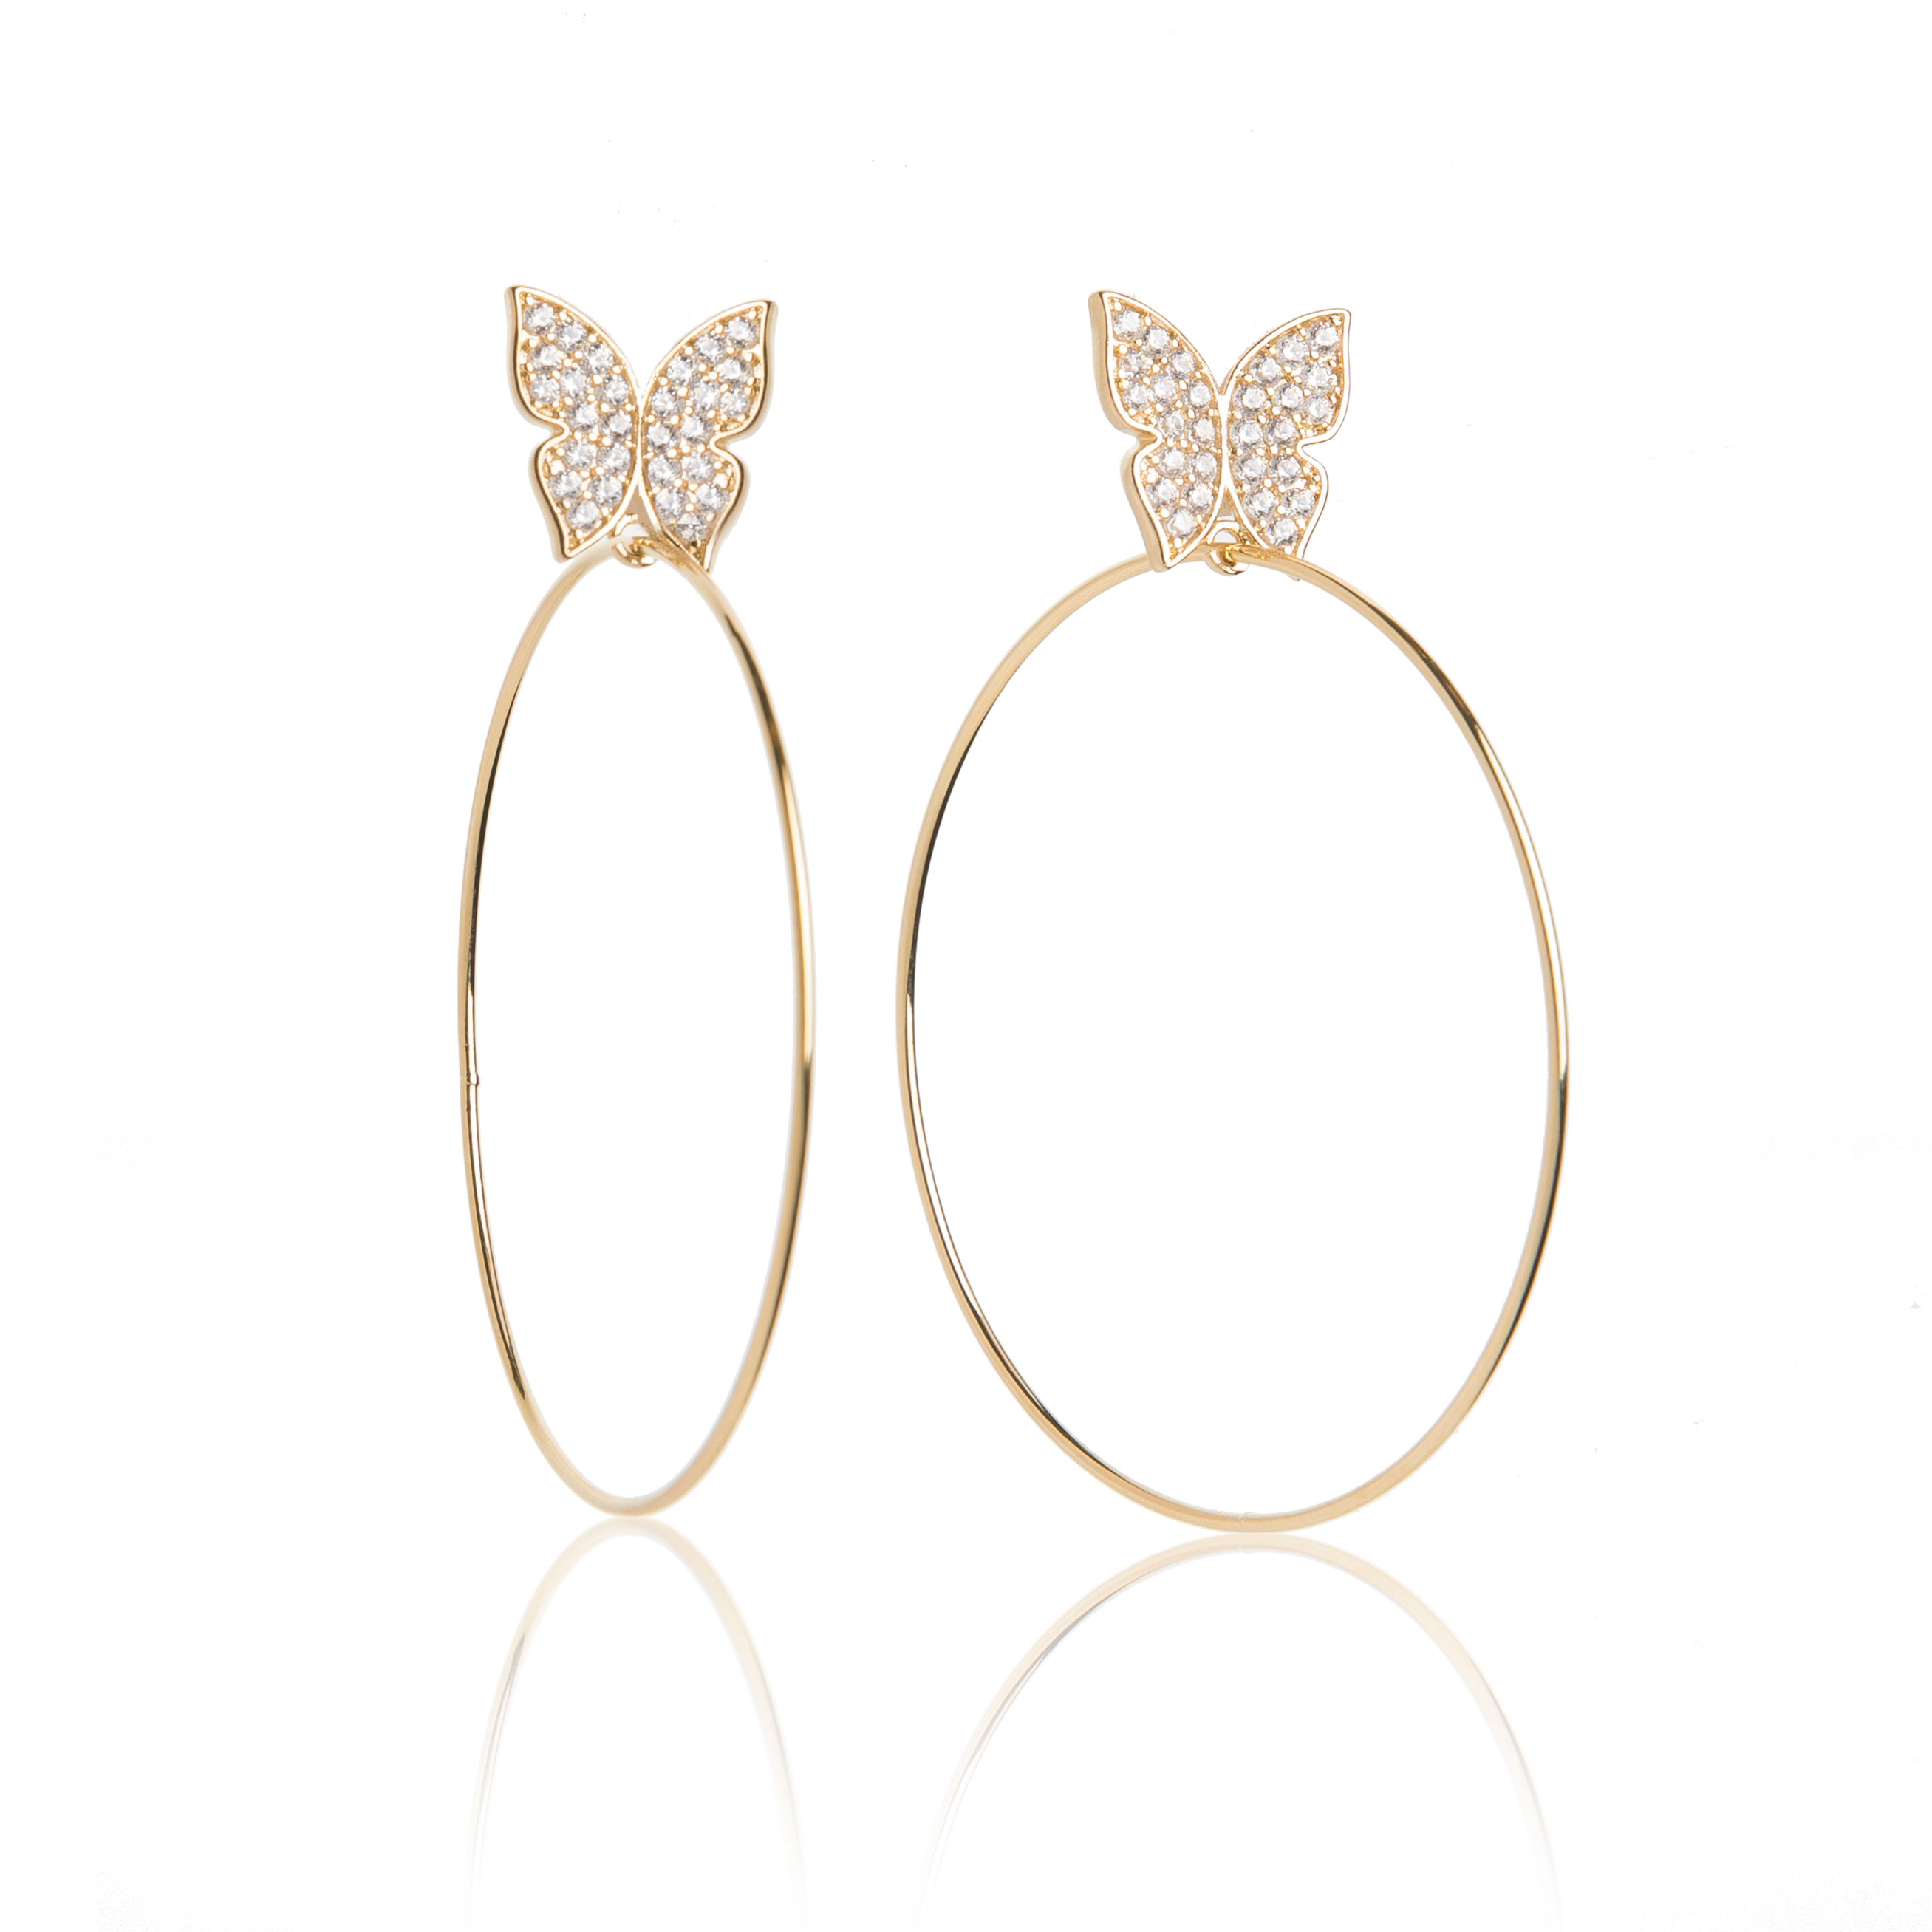 Evelyn Signature 2 Gold Hoop Earrings